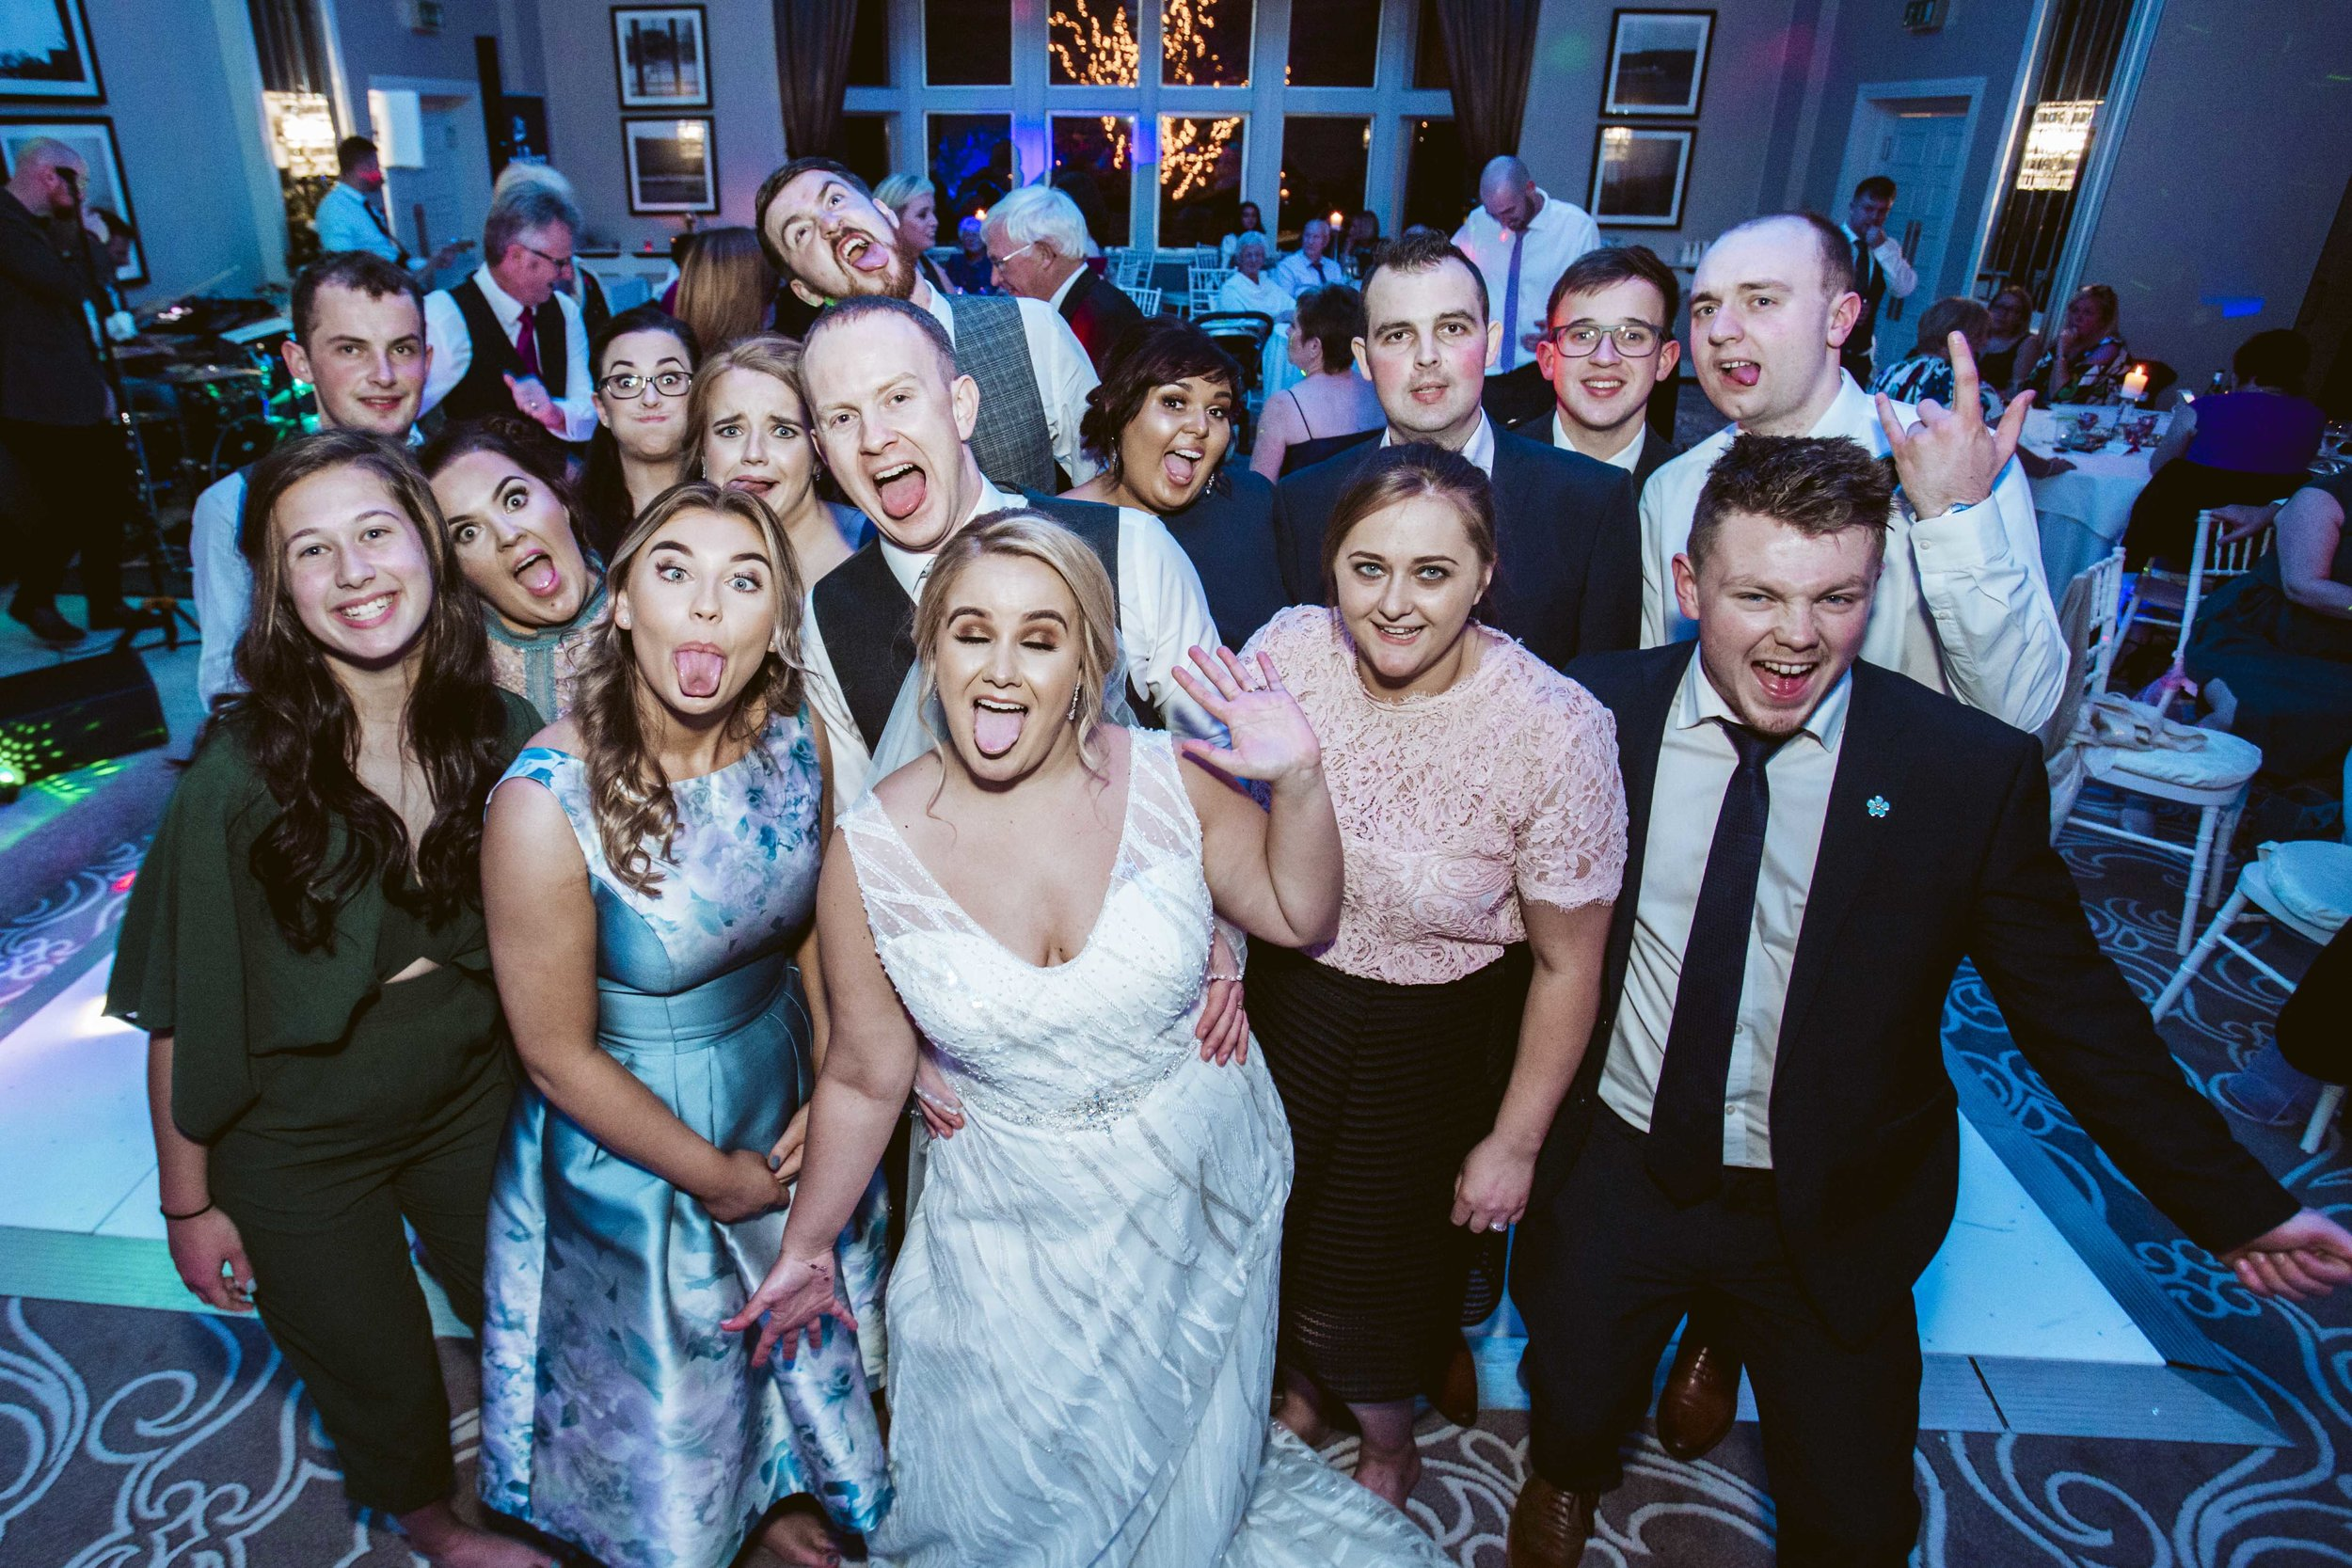 Mar Hall Wedding 2018, Haminsh & Emma McEwan 88.JPG